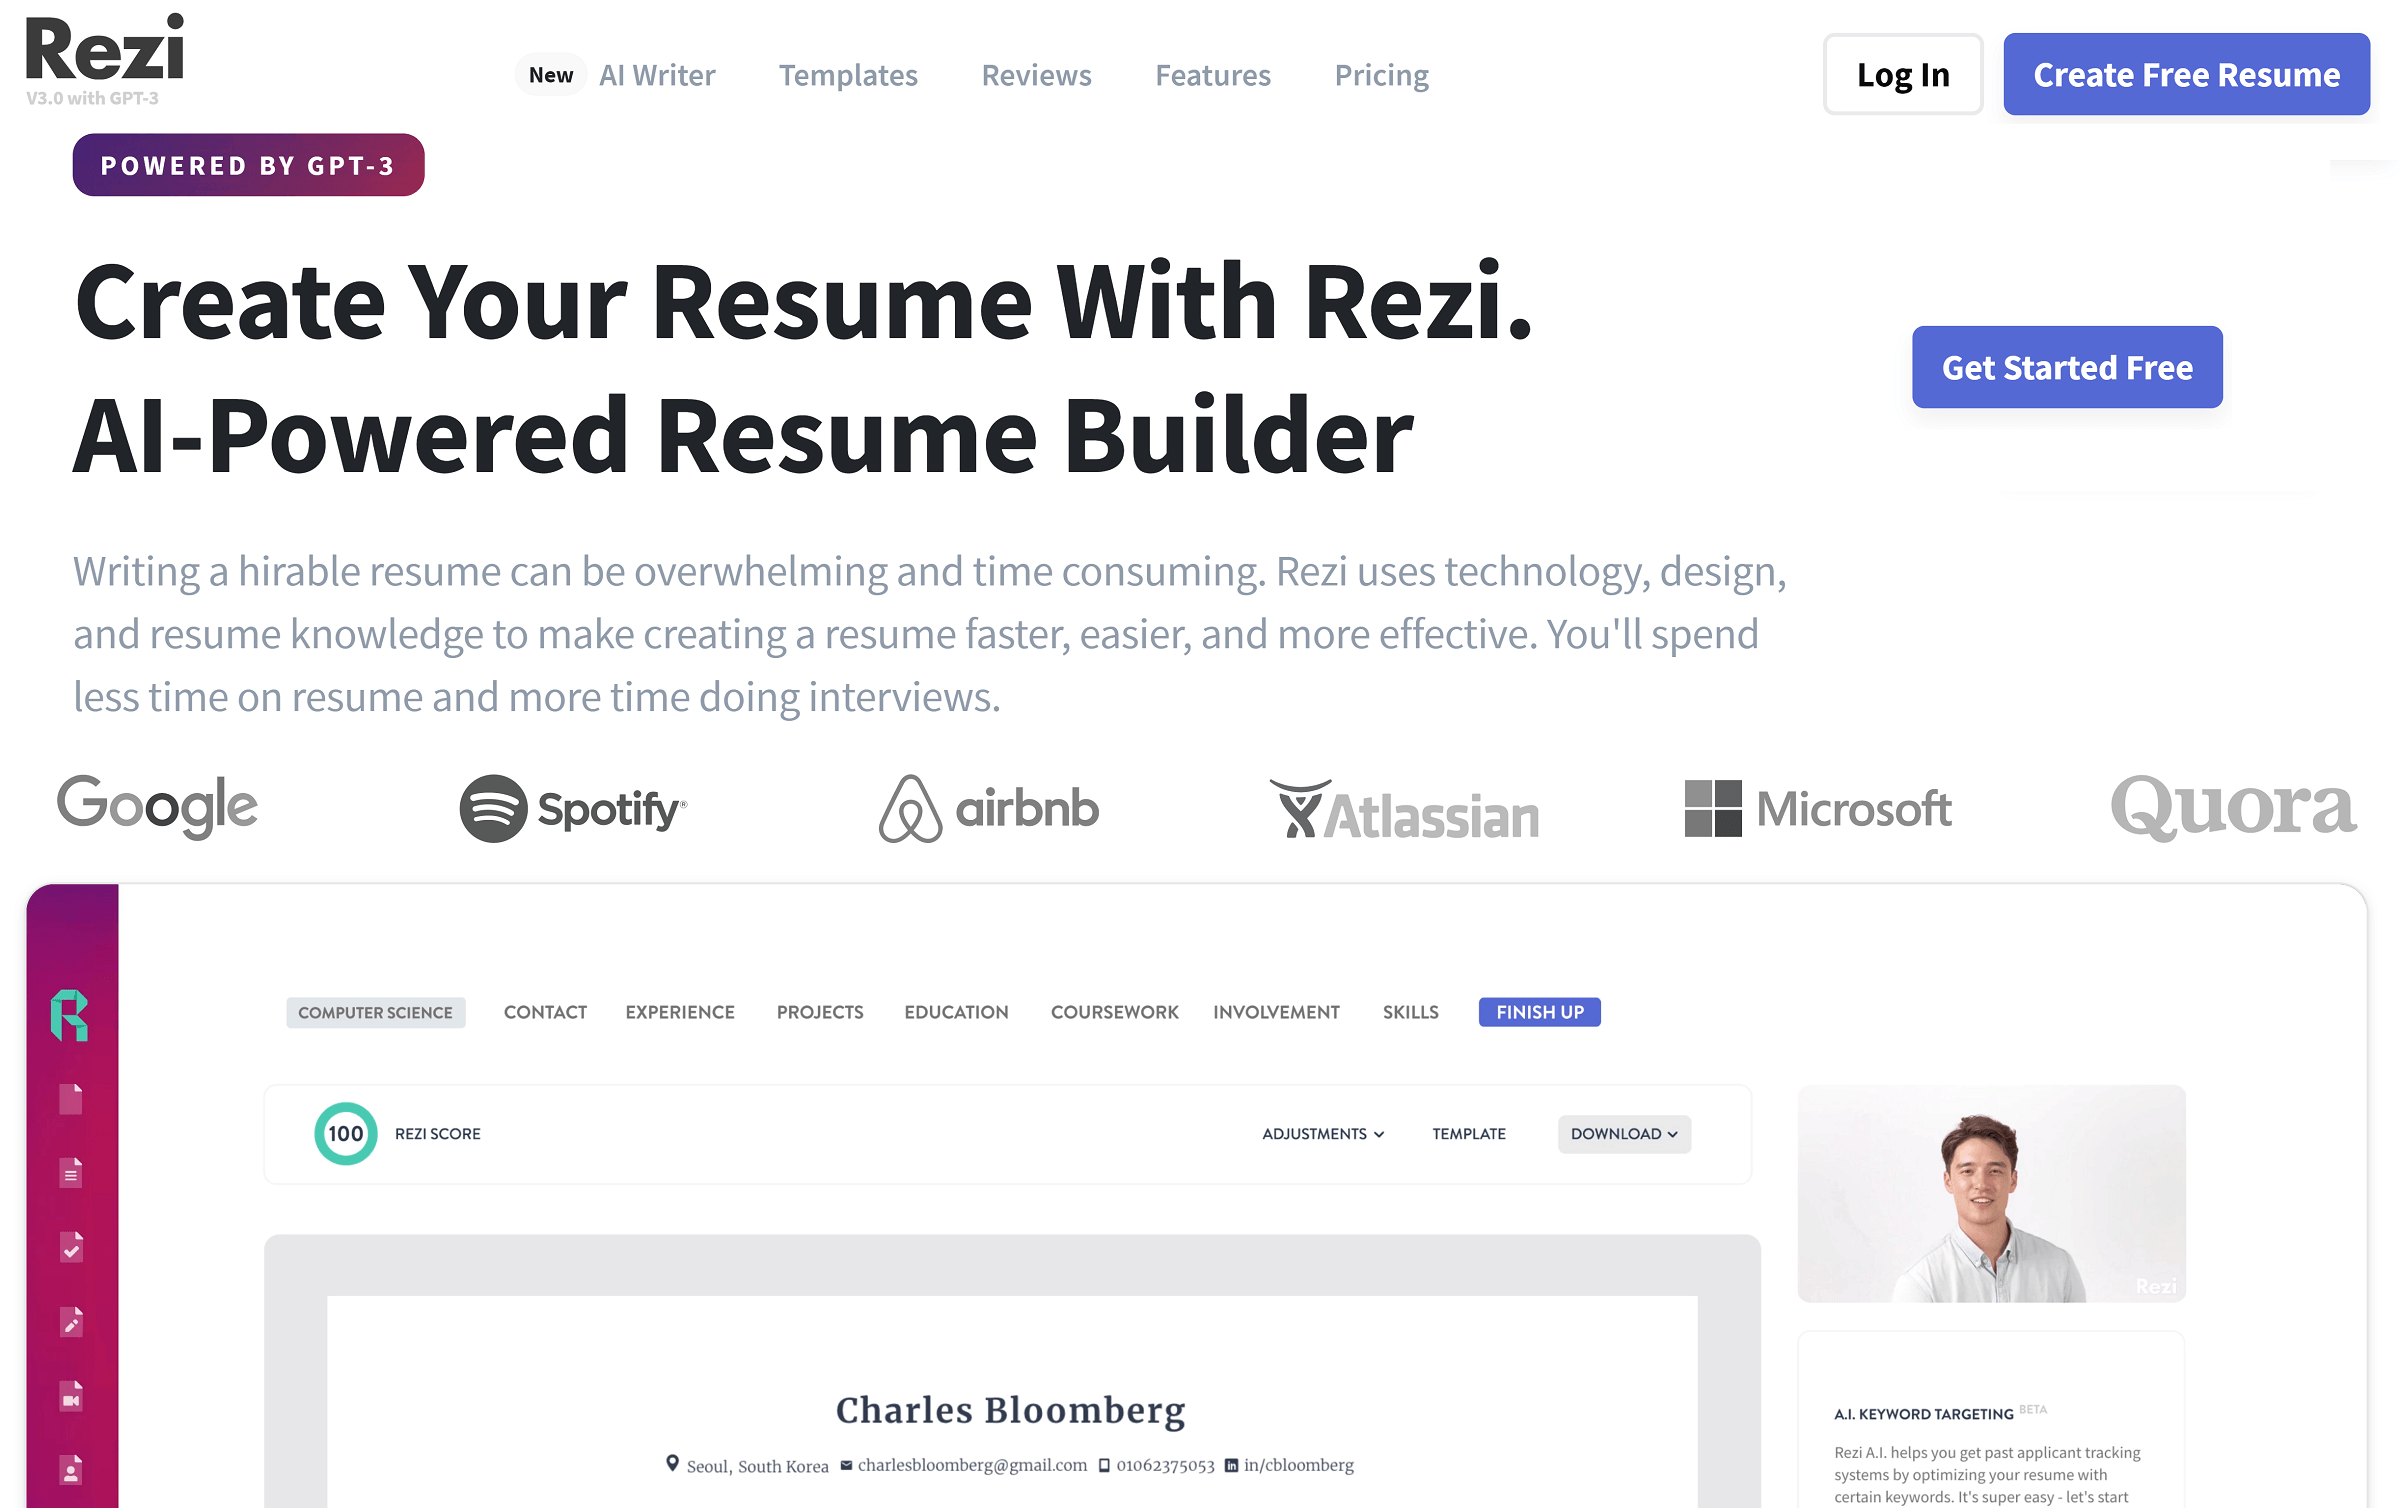 Rezi 3.0: Use the Power of AI to Build a Résumé With GPT-3